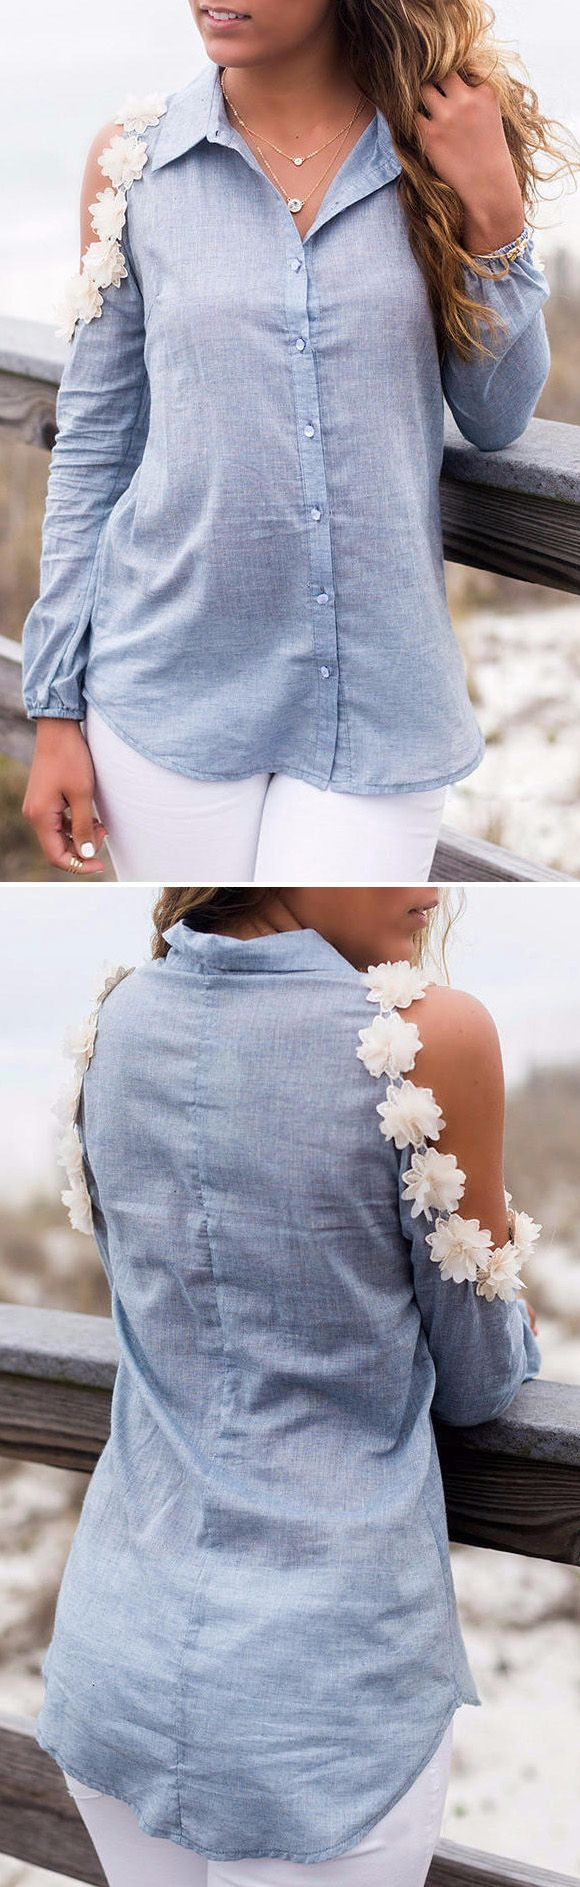 The Charming Flower Decoration Button Down Blouse with a pair of high heels and jeans from OASAP would create a stylish outfit.